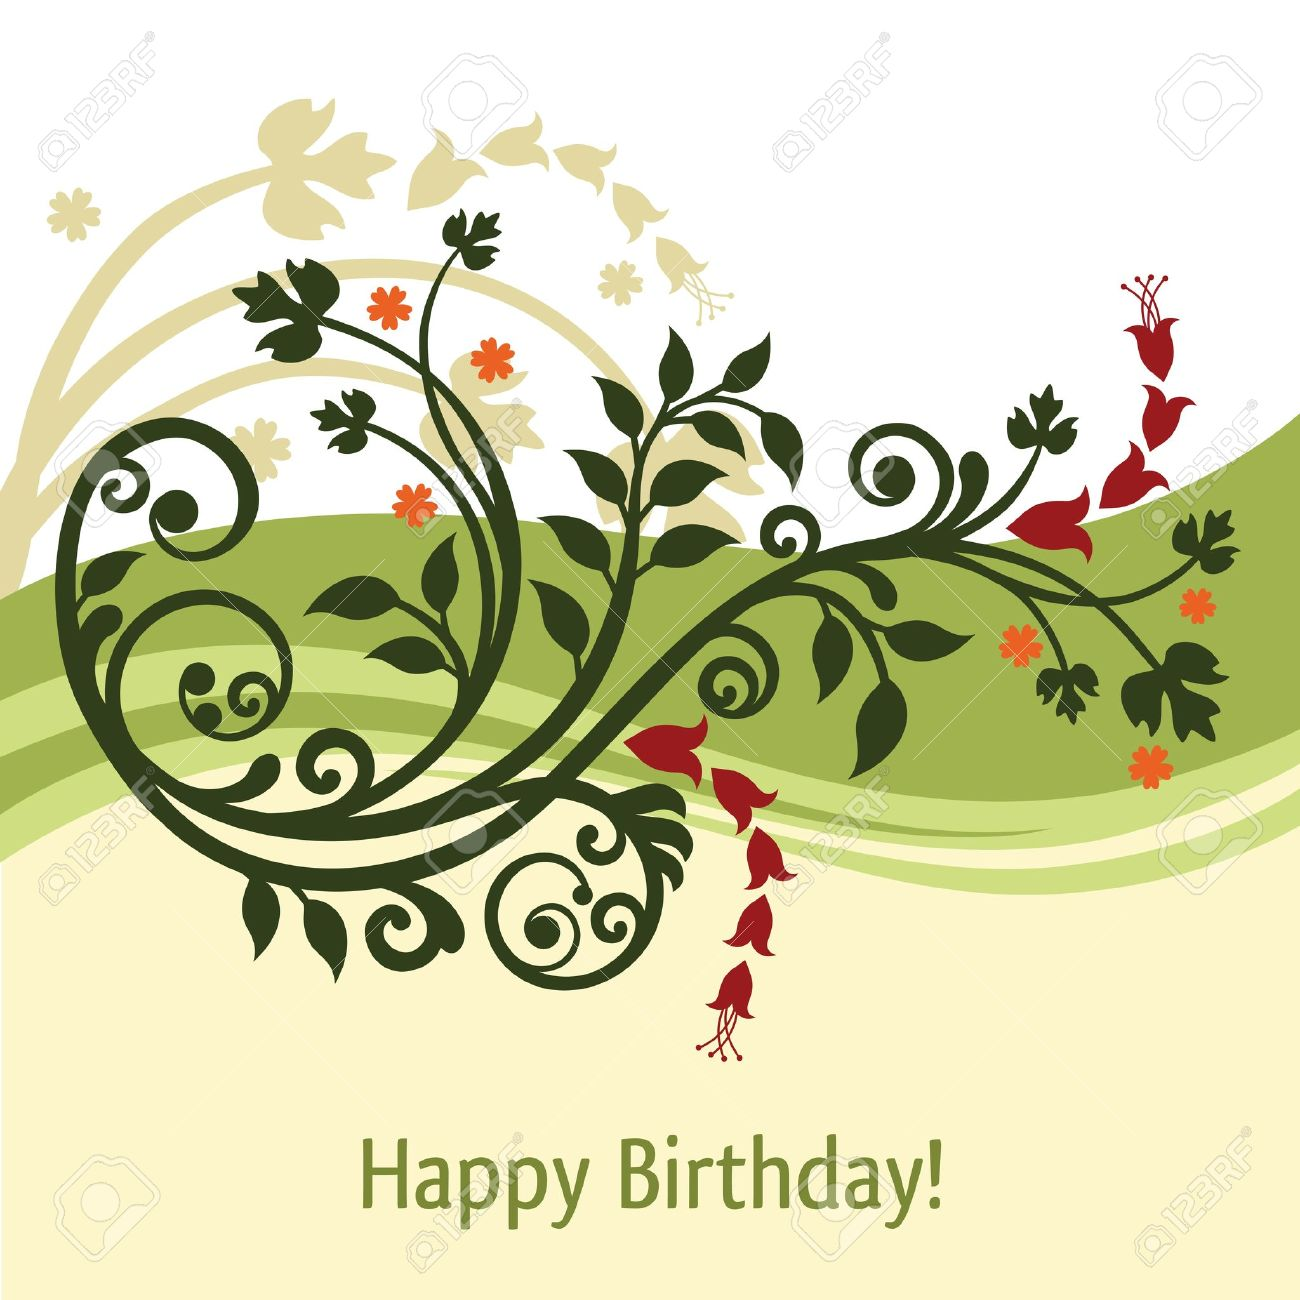 Green and yellow birthday card Stock Vector - 10269679